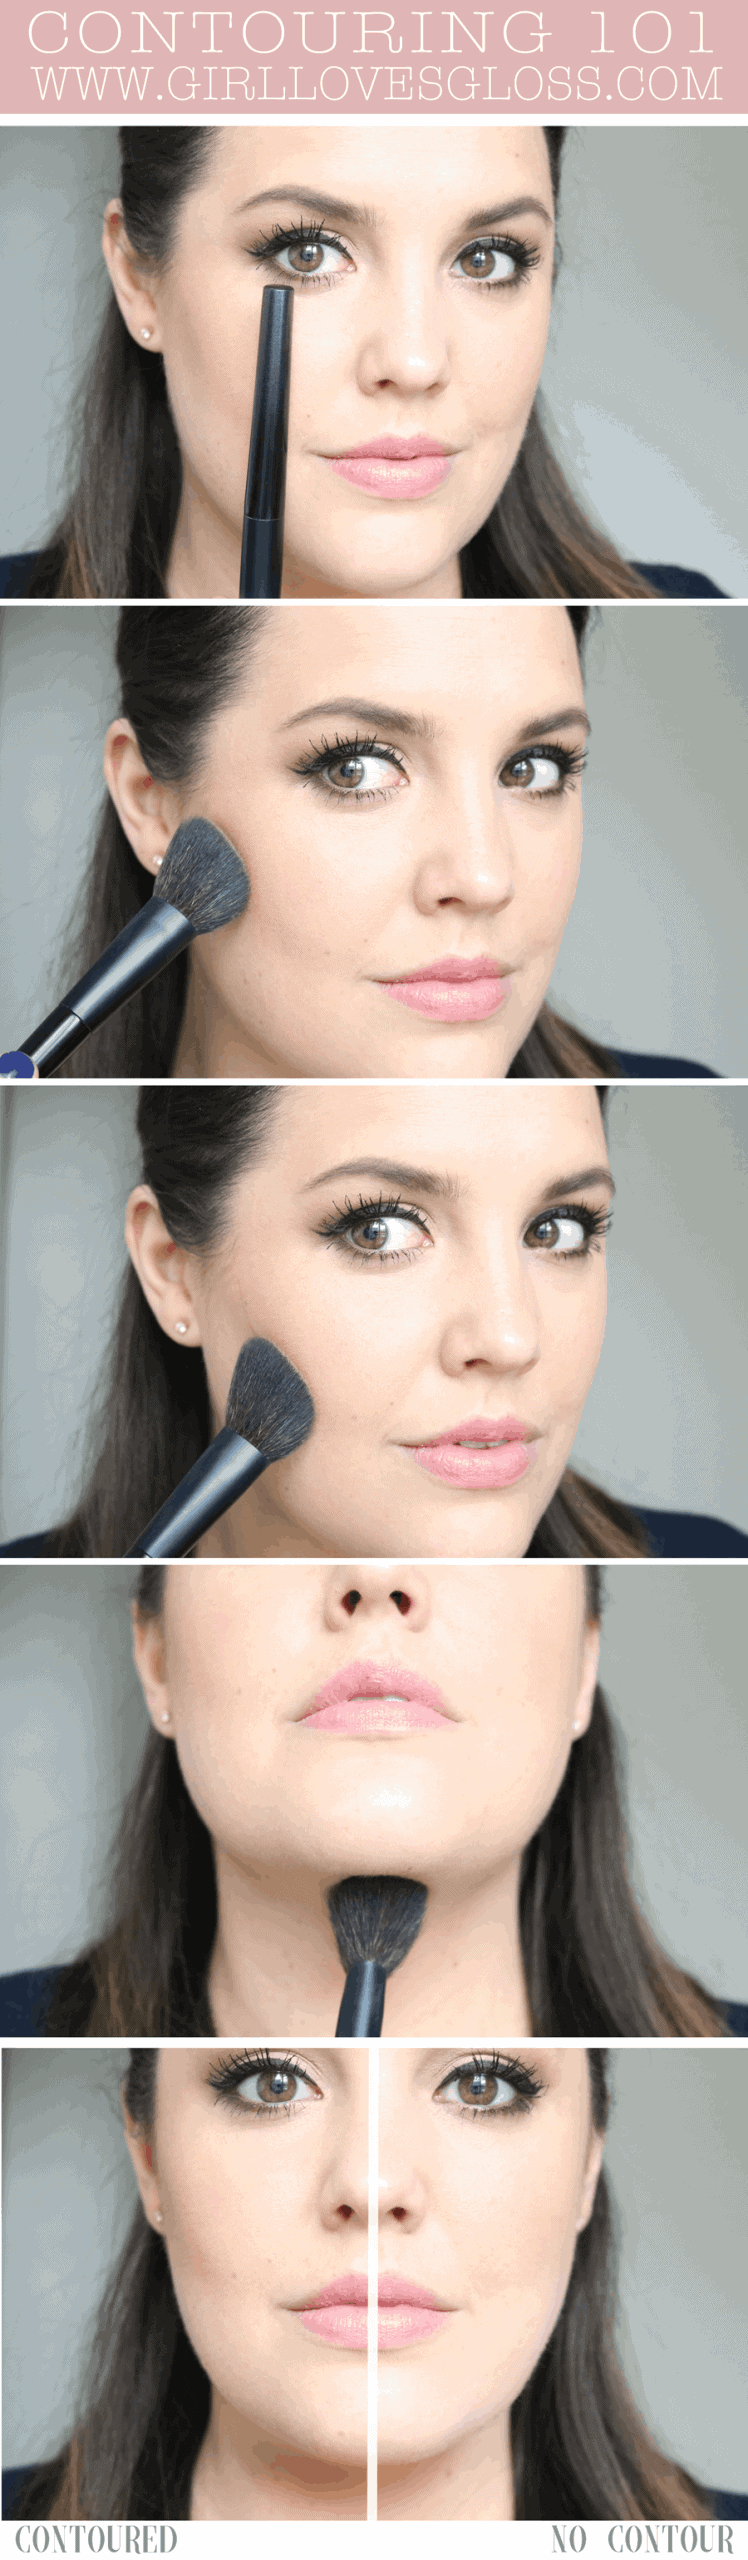 How to Contour Naturally Step by Step